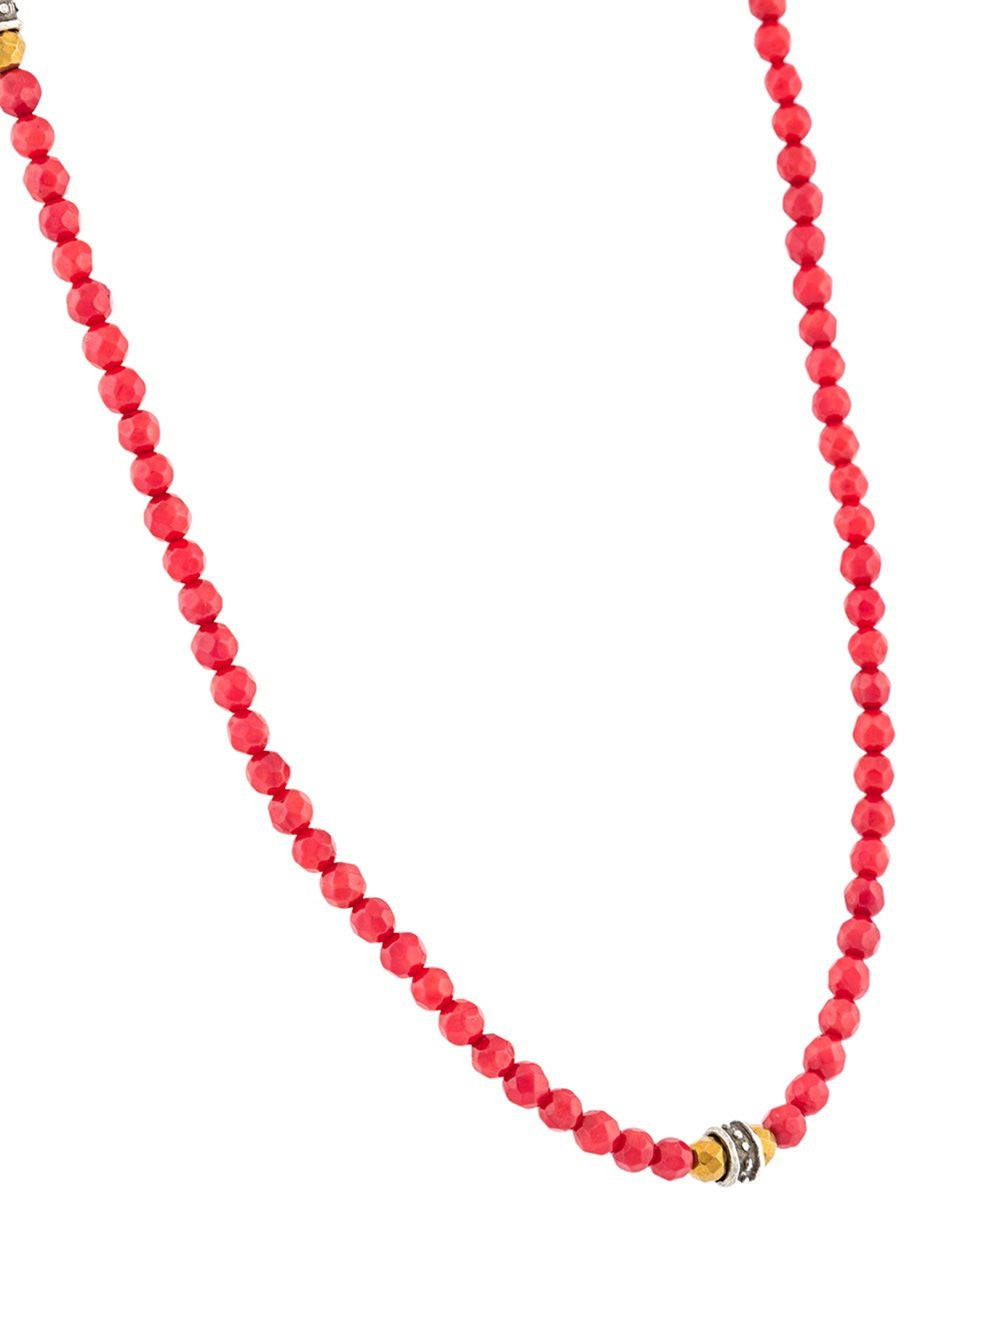 Beaded Red Coral Necklace | N-479-7-C